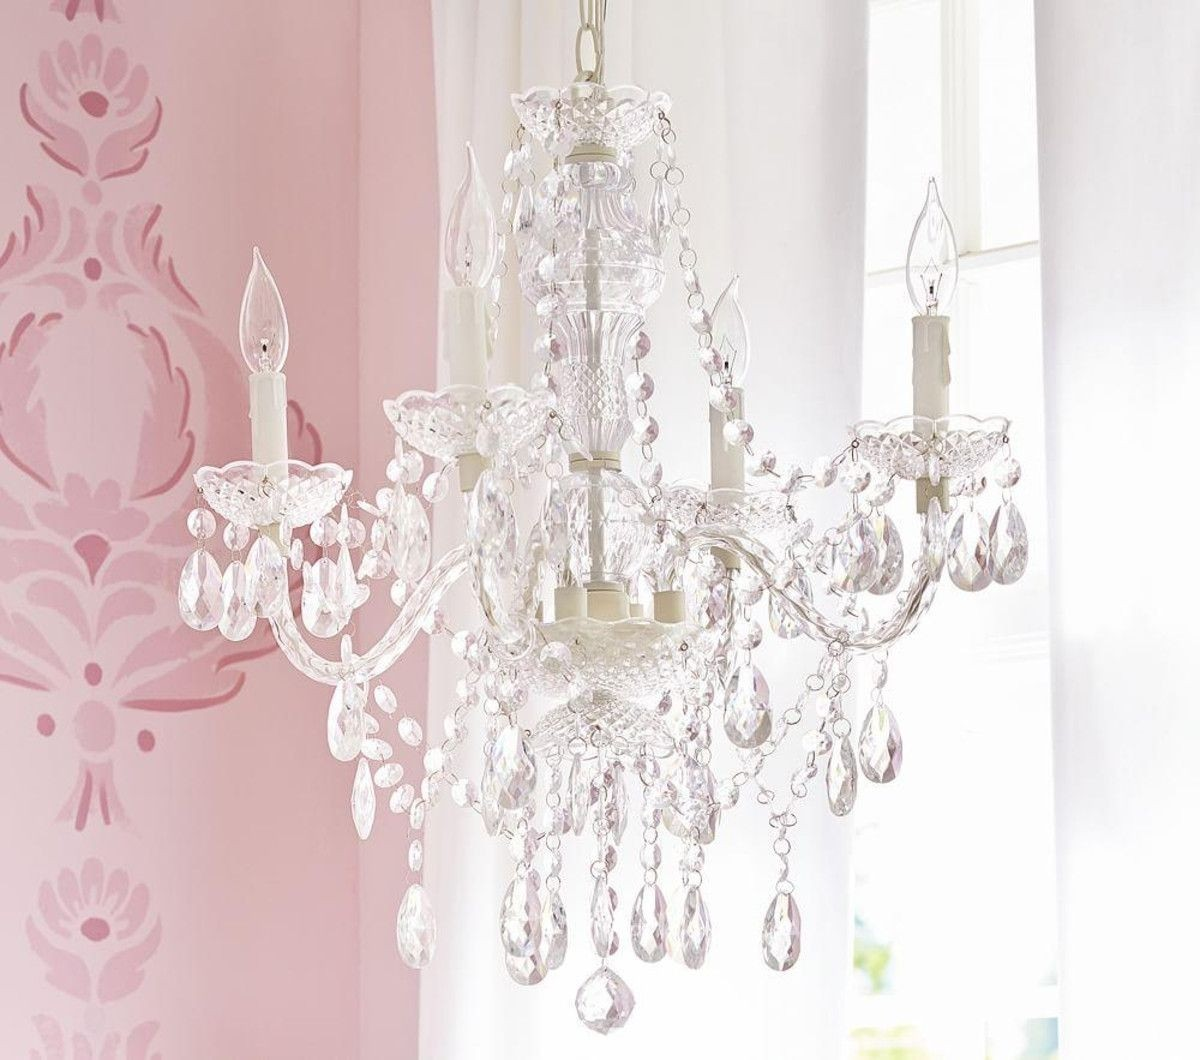 Ordinaire Chandelier Girls Room 2